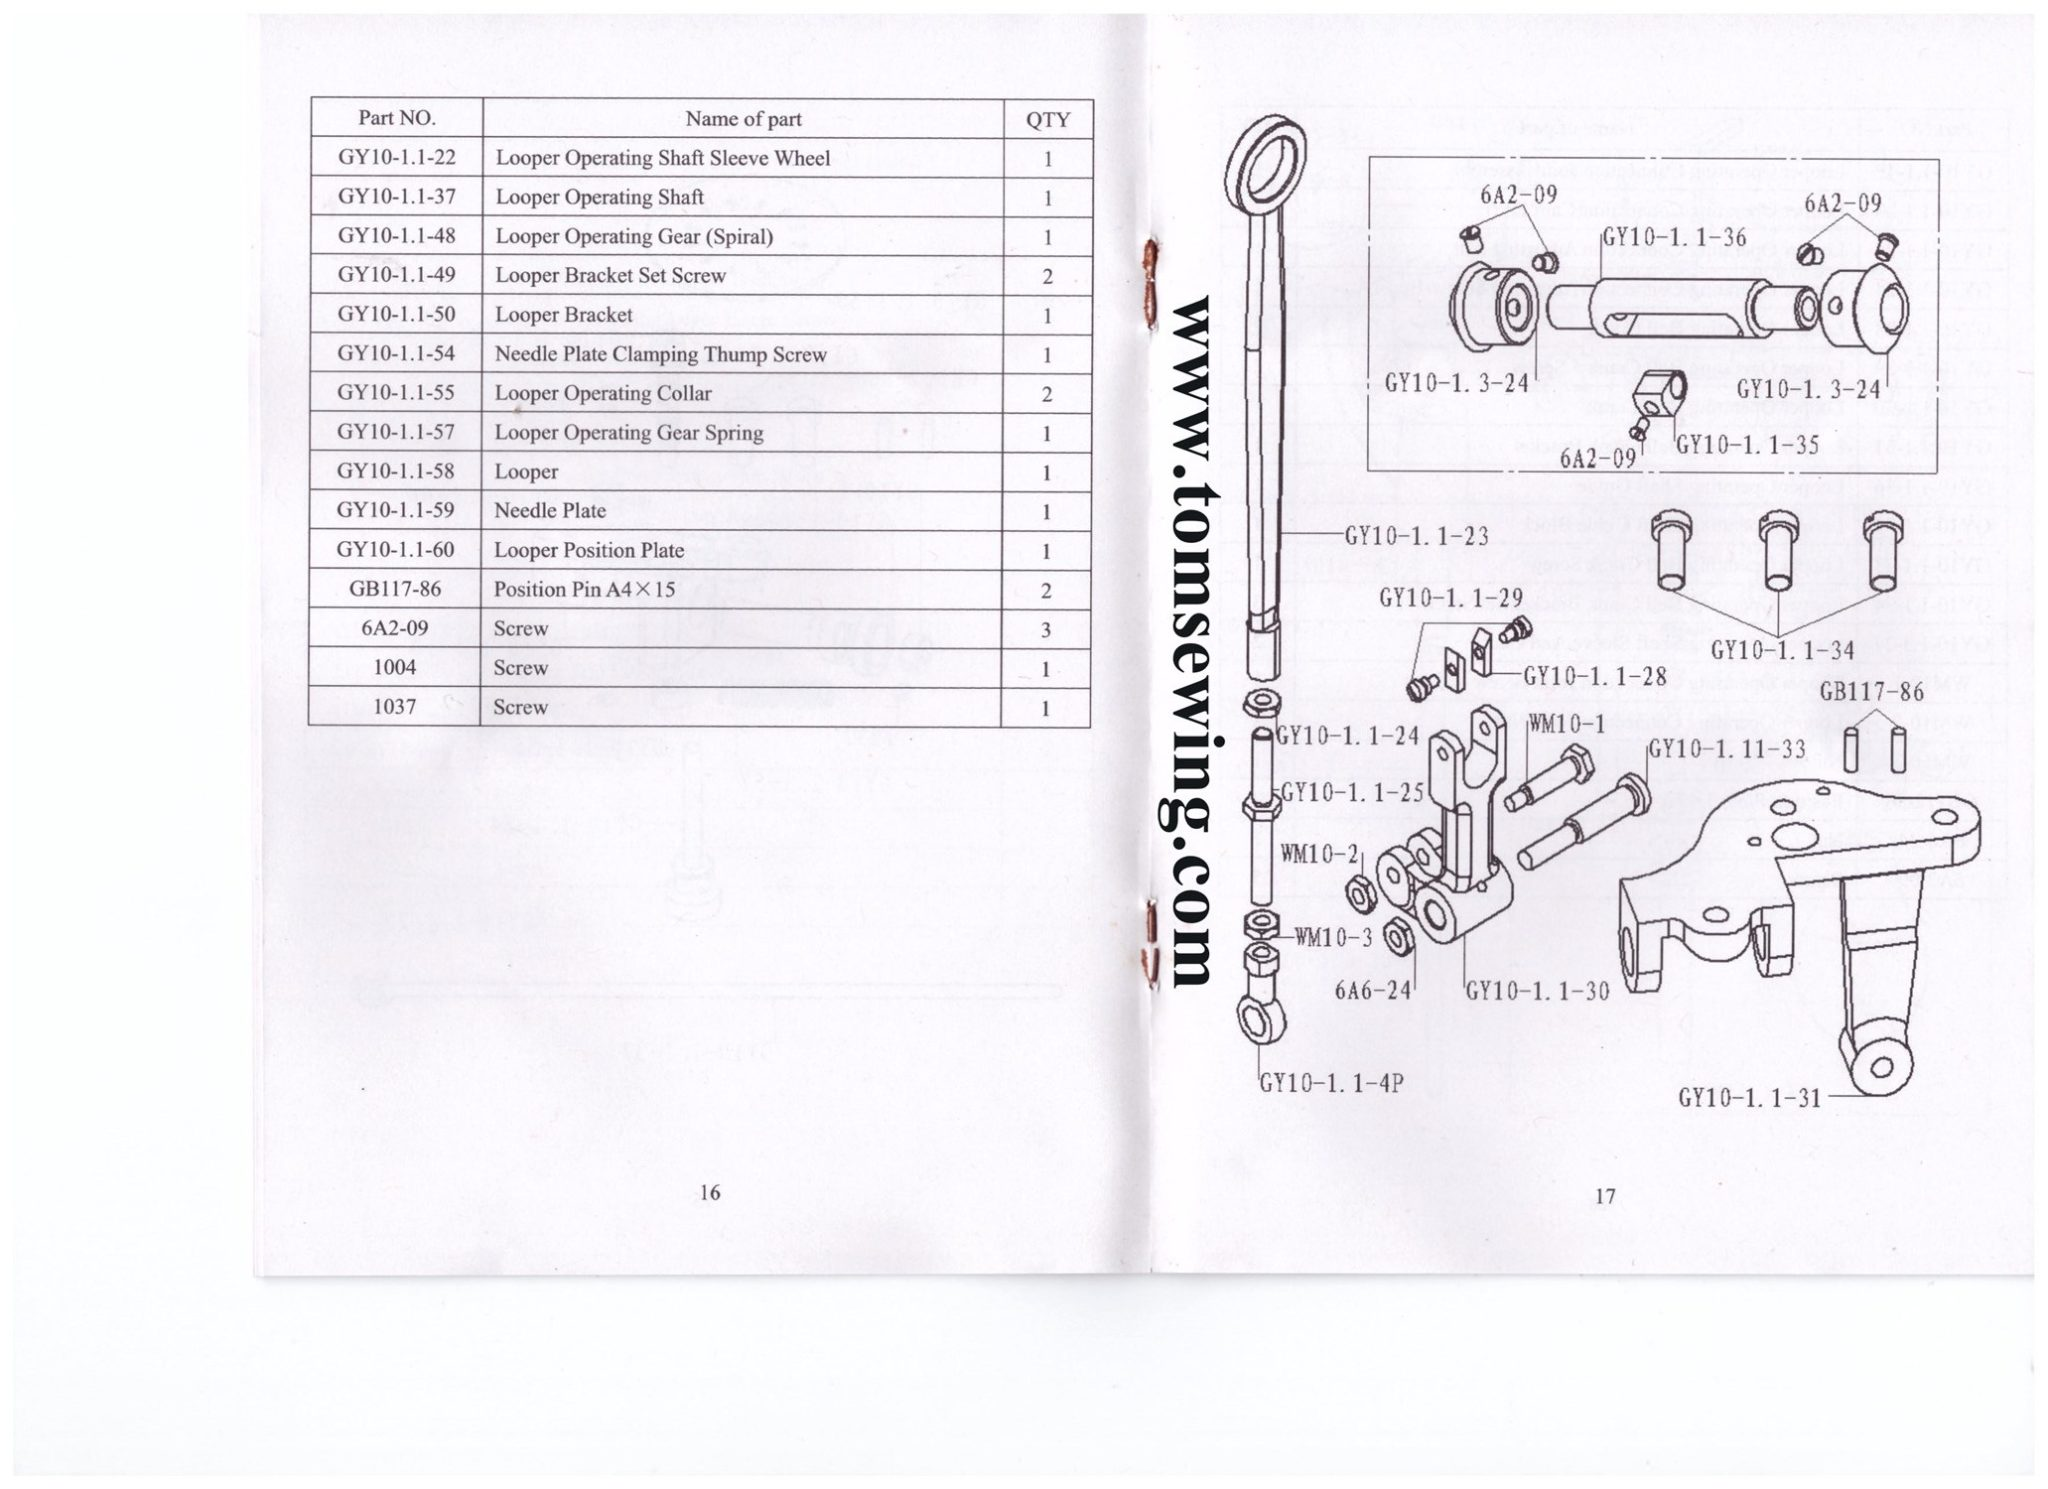 Brother Embroidery Machine Parts Manual